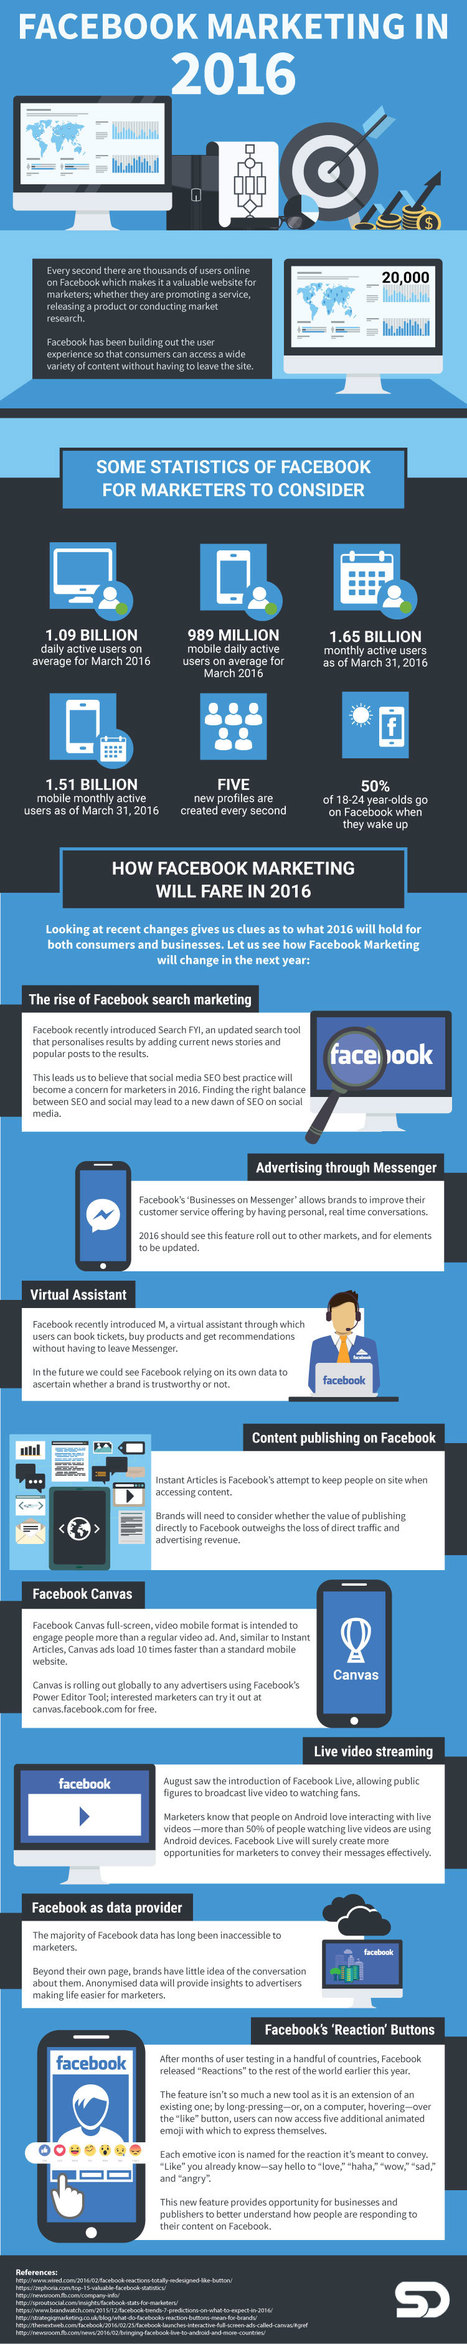 How Marketing on Facebook is Changing in 2016 #Infographic | MarketingHits | Scoop.it